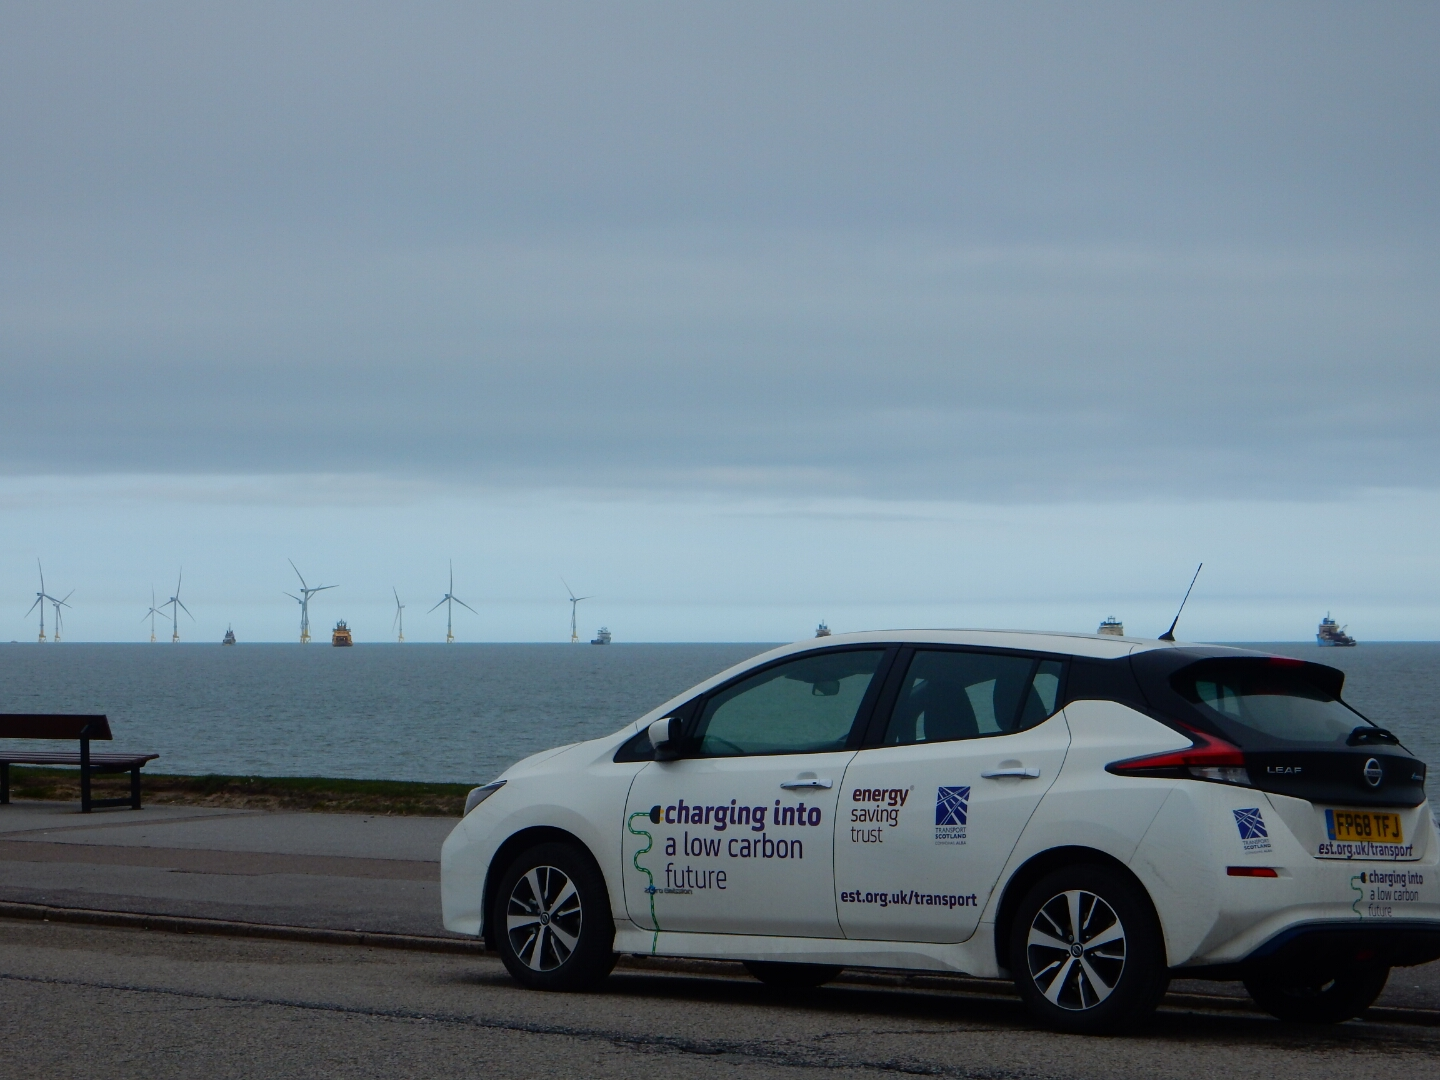 StEVie the EV on the road in Scotland, with wind turbines in the background